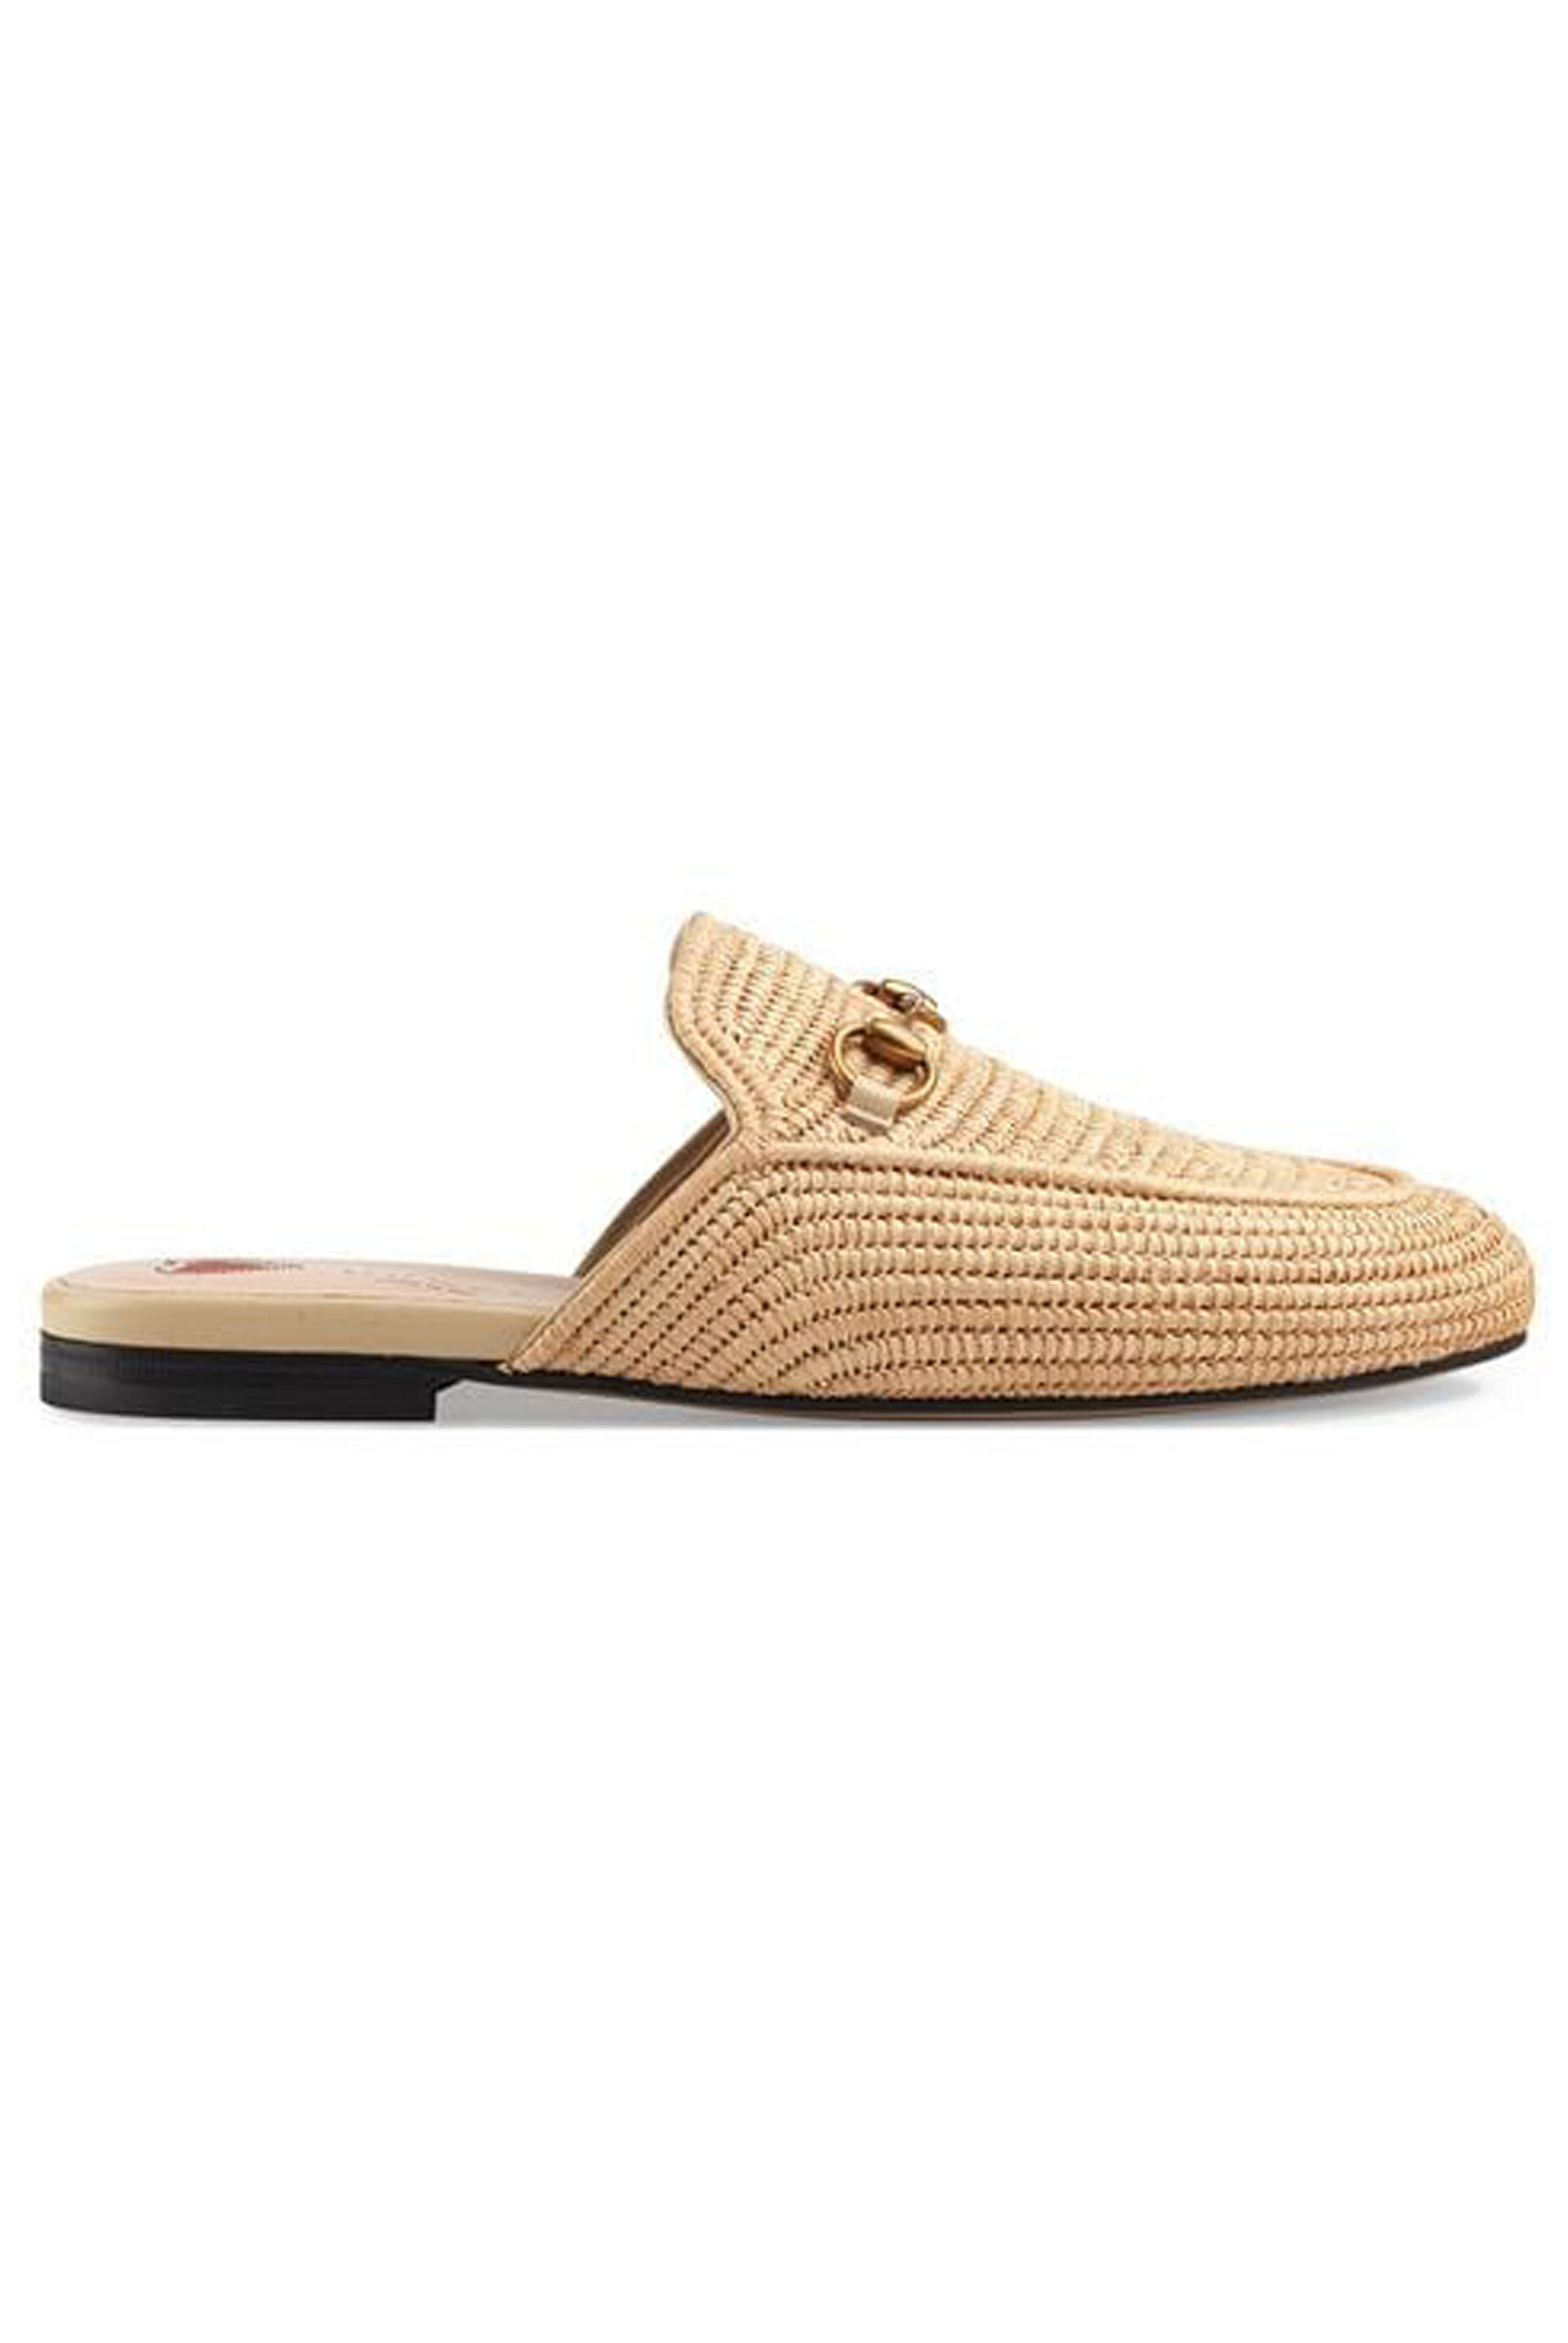 Gucci Slippers 2